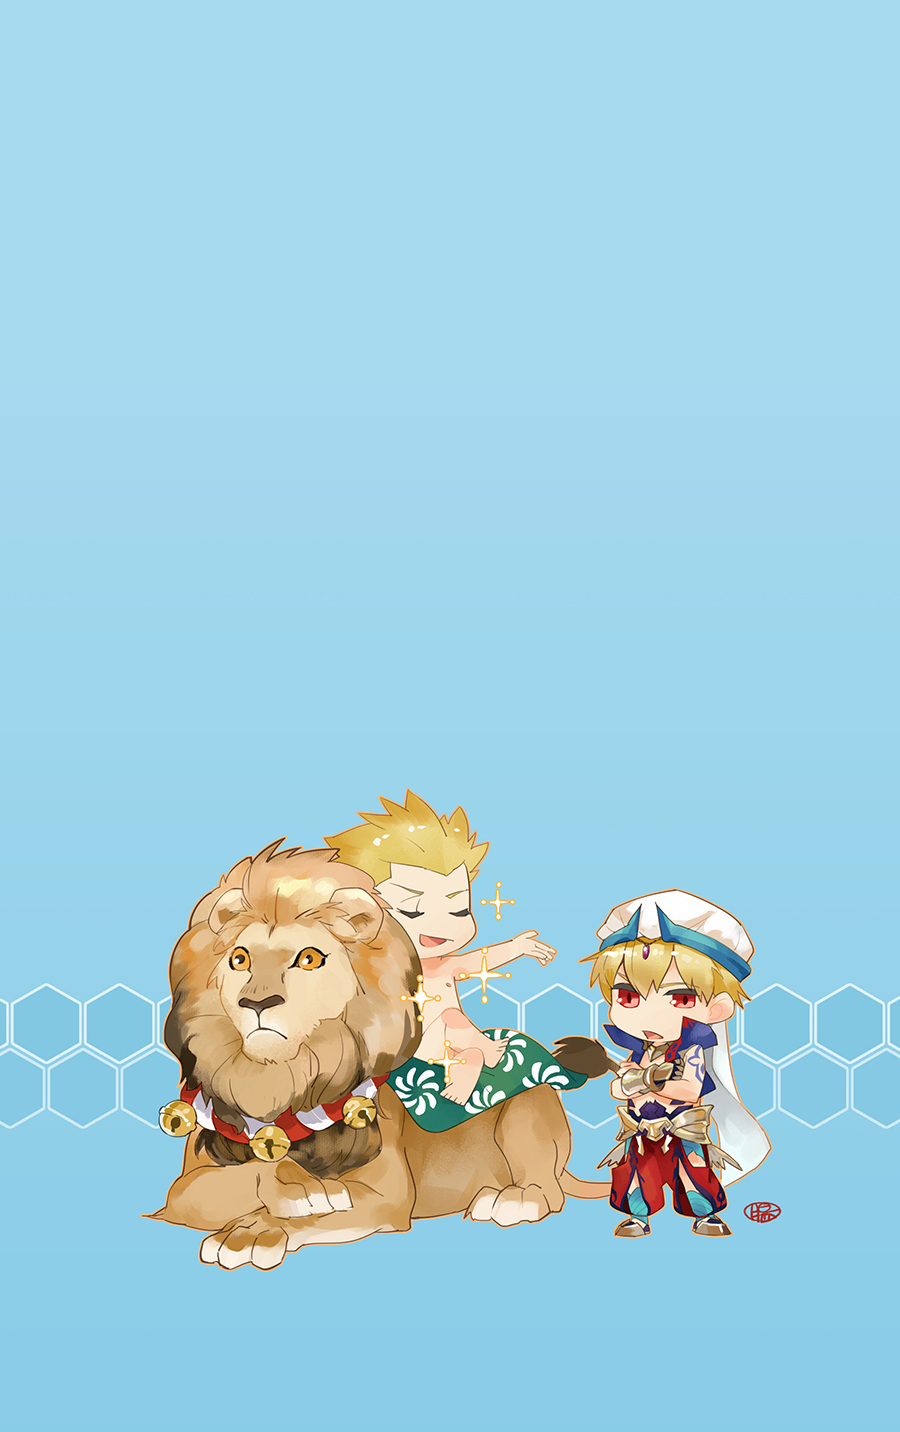 2boys arabian_clothes blonde_hair chibi cropped_vest crossed_arms dual_persona fate/grand_order fate_(series) gauntlets gilgamesh gilgamesh_(caster)_(fate) guttia high_collar highres lion multiple_boys nude puffy_pants red_eyes sparkle turban